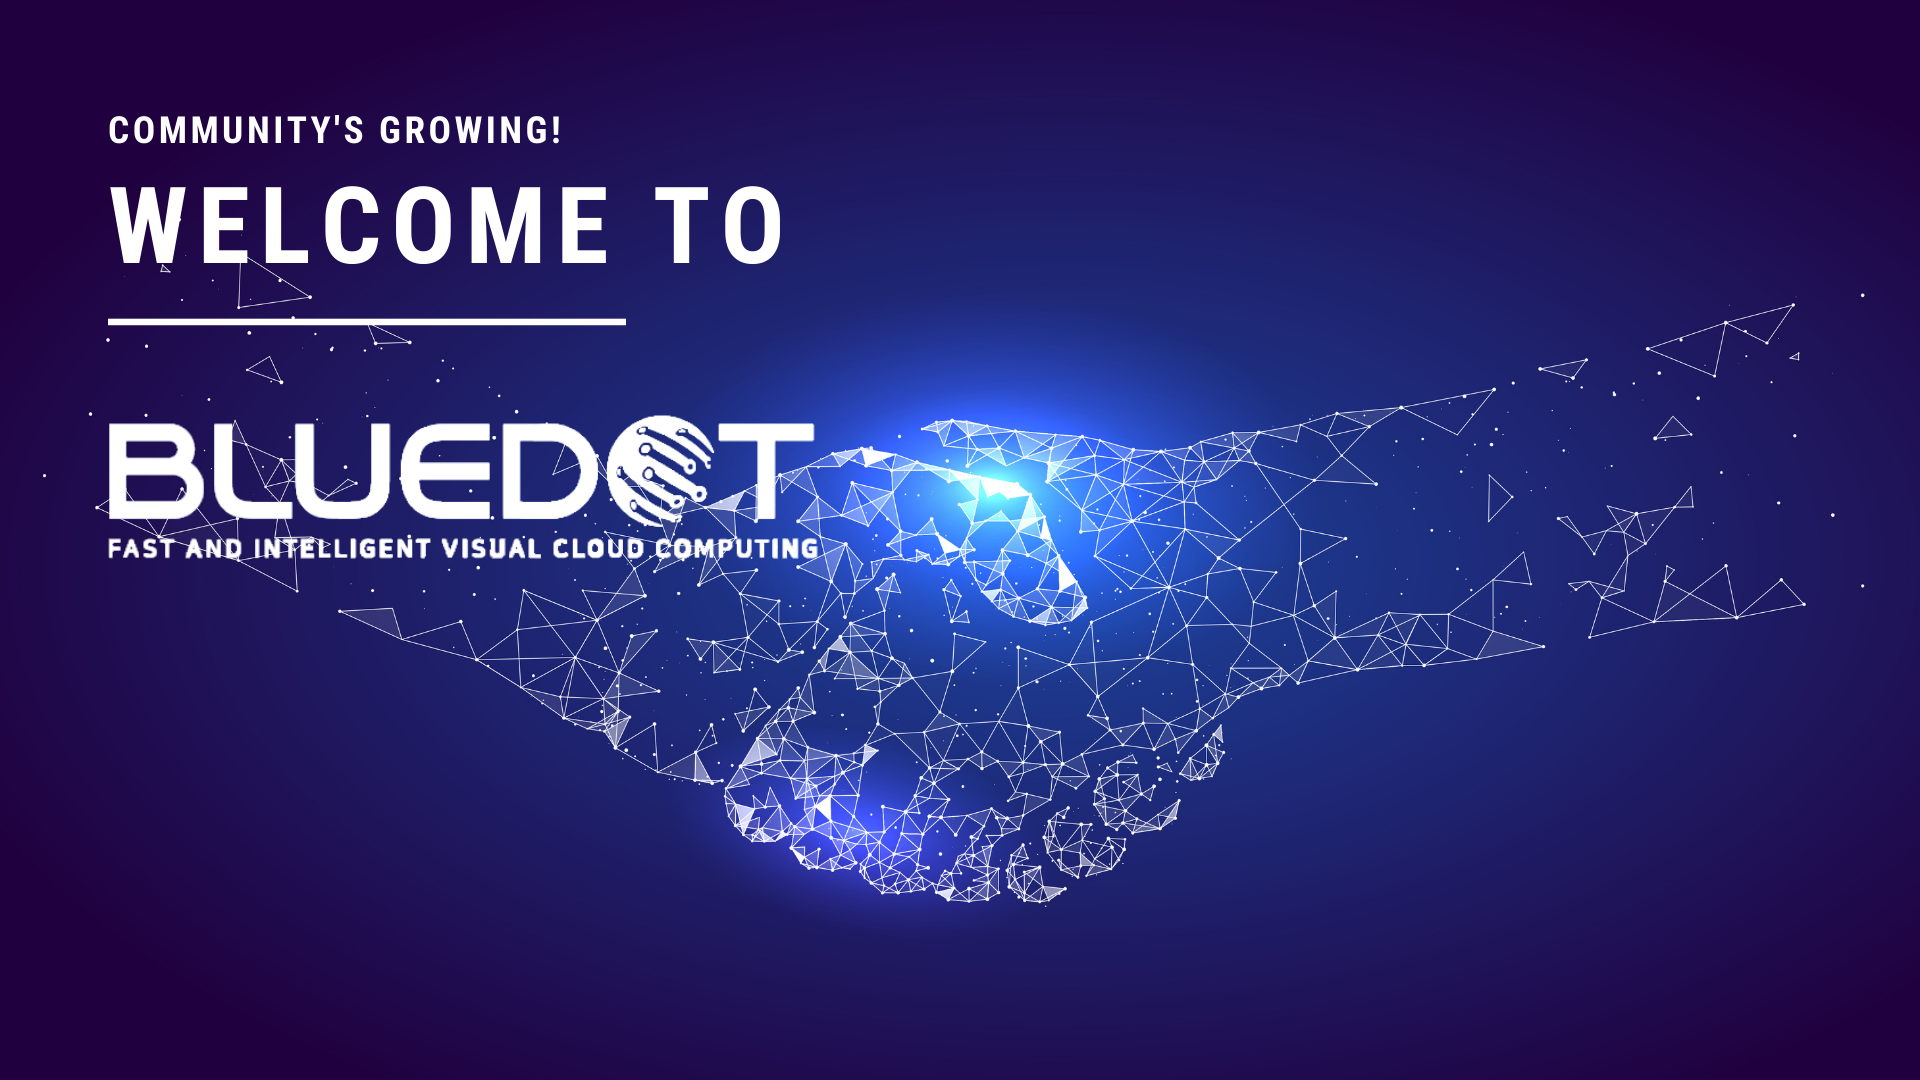 WELCOME TO BLUEDOT